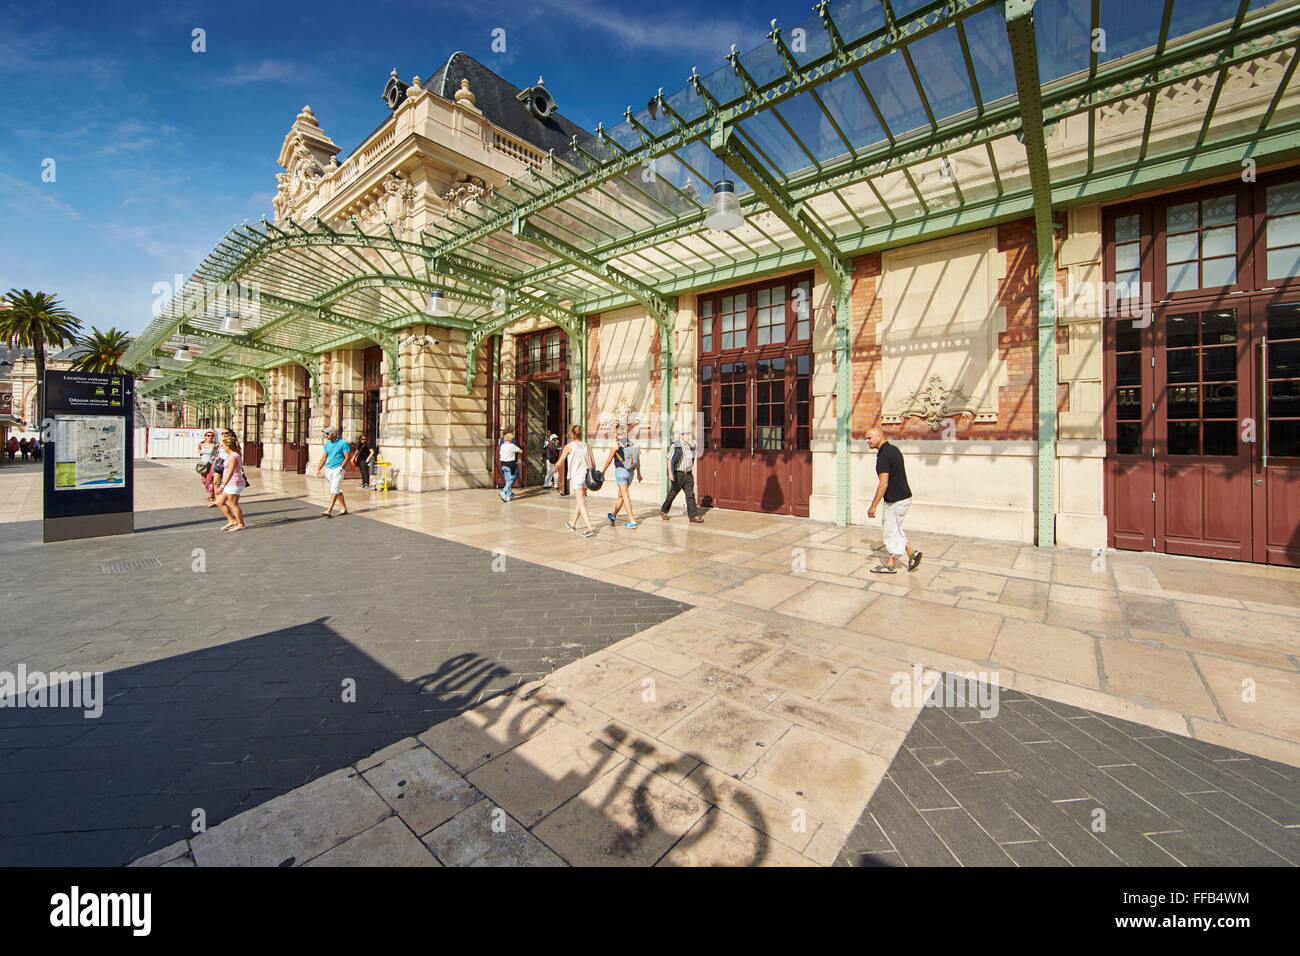 France, Nice, 08.09.2015: Facade of the railway station in the center of Nice, sunny day, blue sky, a lot of tourists, - Stock Image